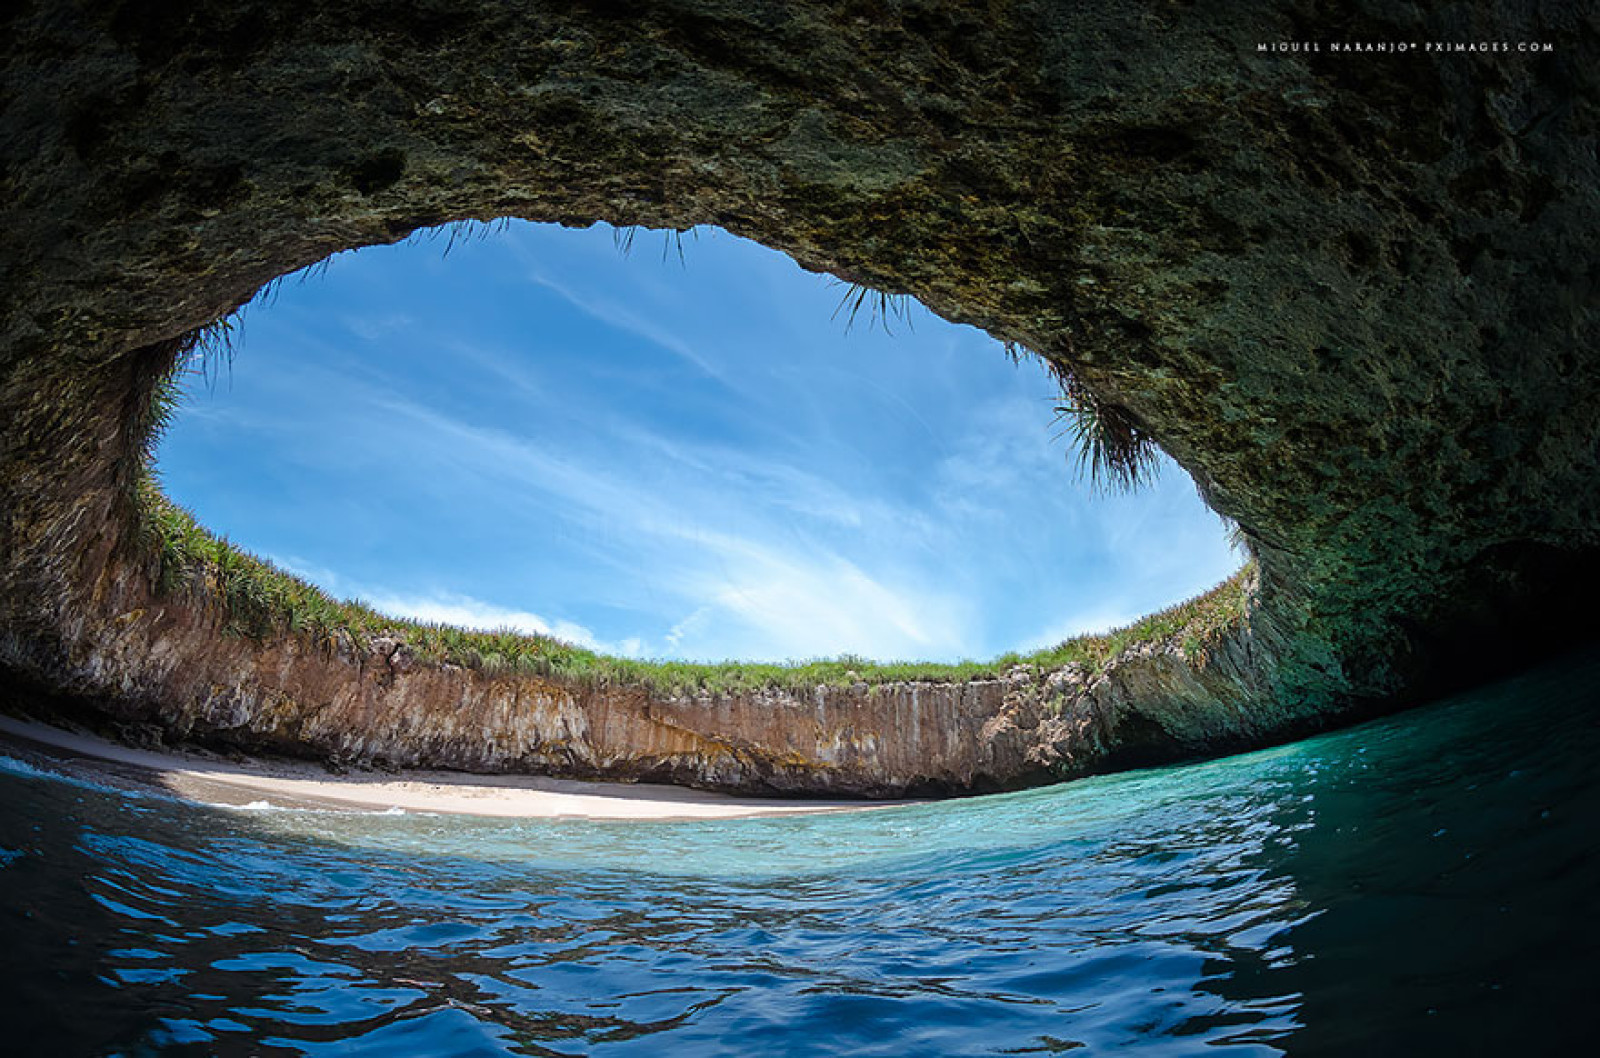 Marieta islands hidden beach and dolphins rock n 39 rove for Alberca water planet nuevo laredo